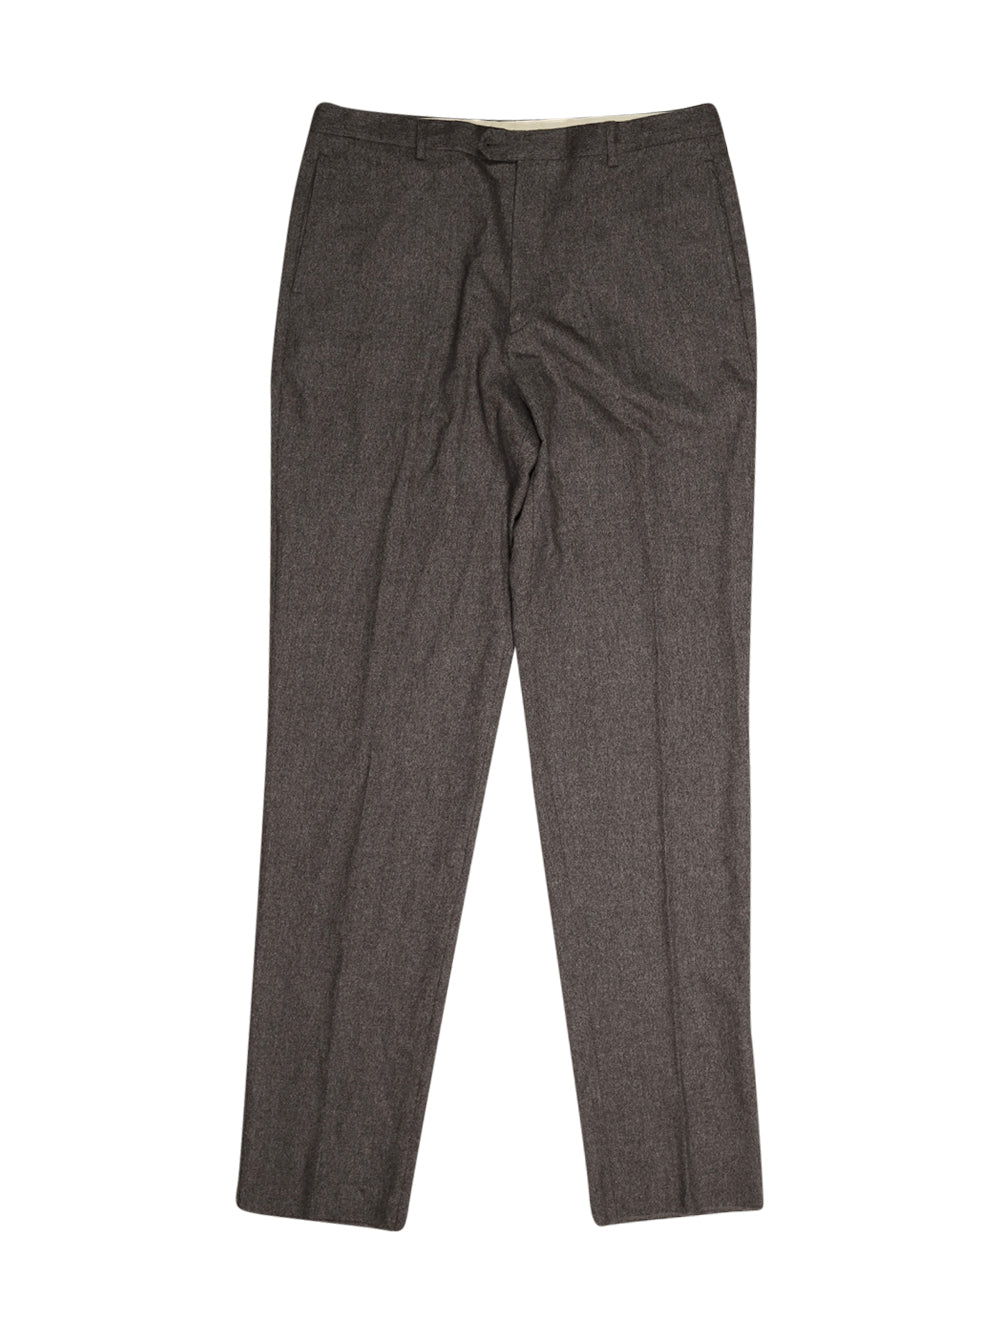 Front photo of Preloved Enzo Fusco Grey Man's trousers - size 44/XXL